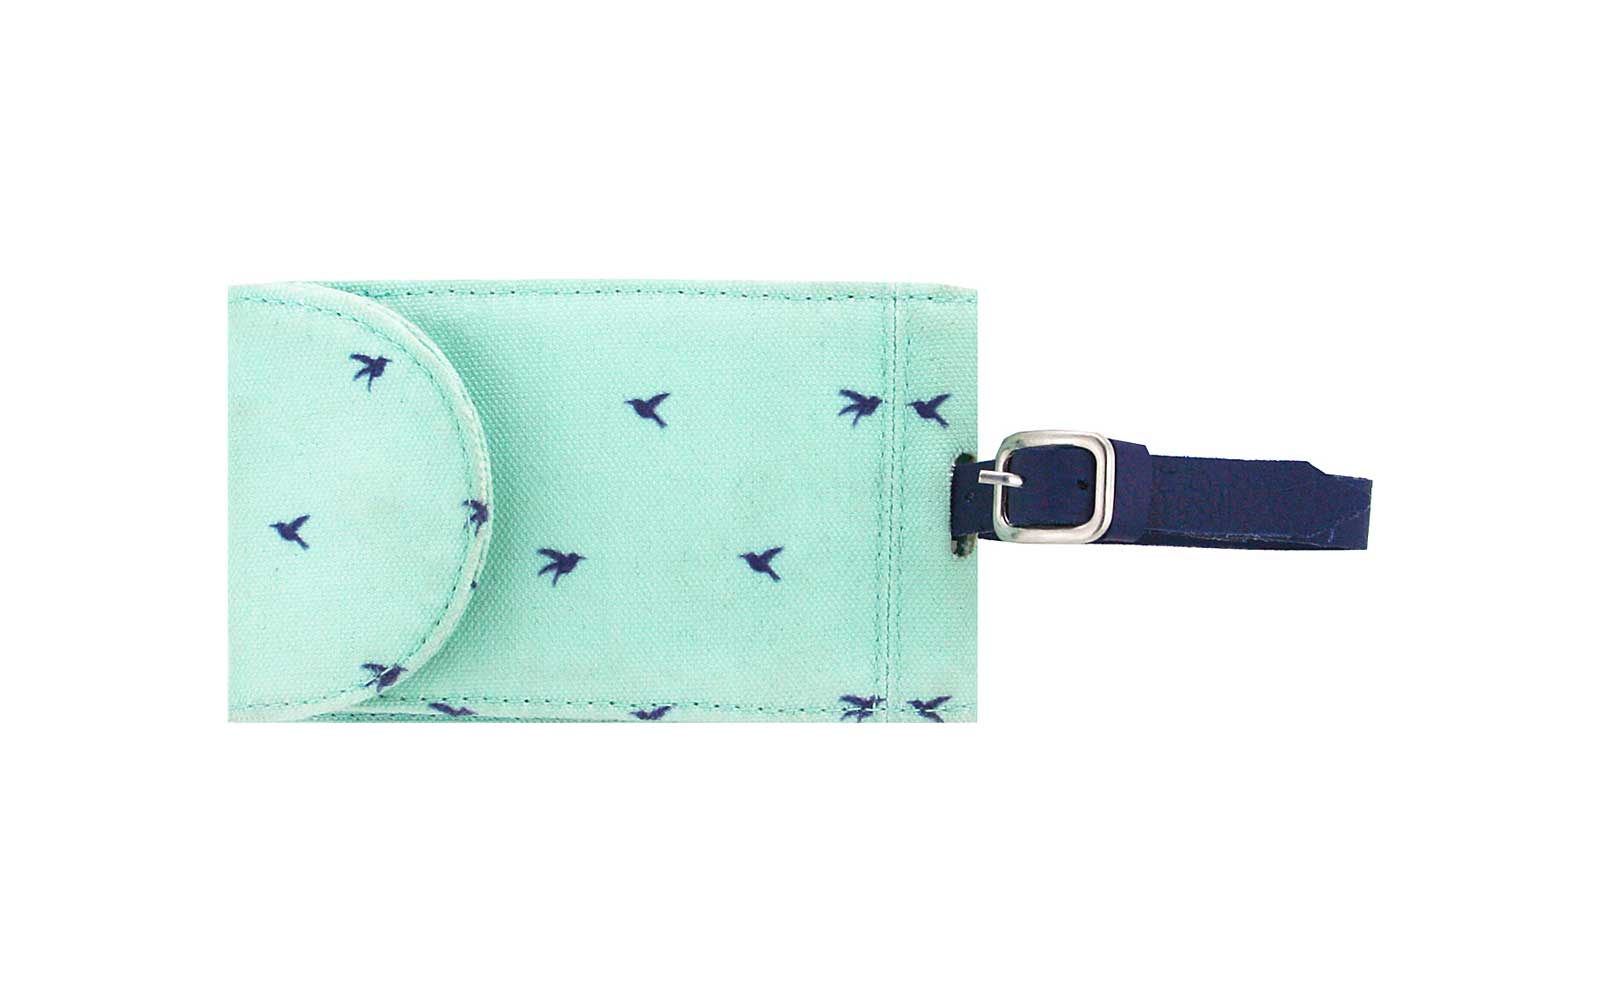 Capri Designs Sarah Watts Luggage Tag